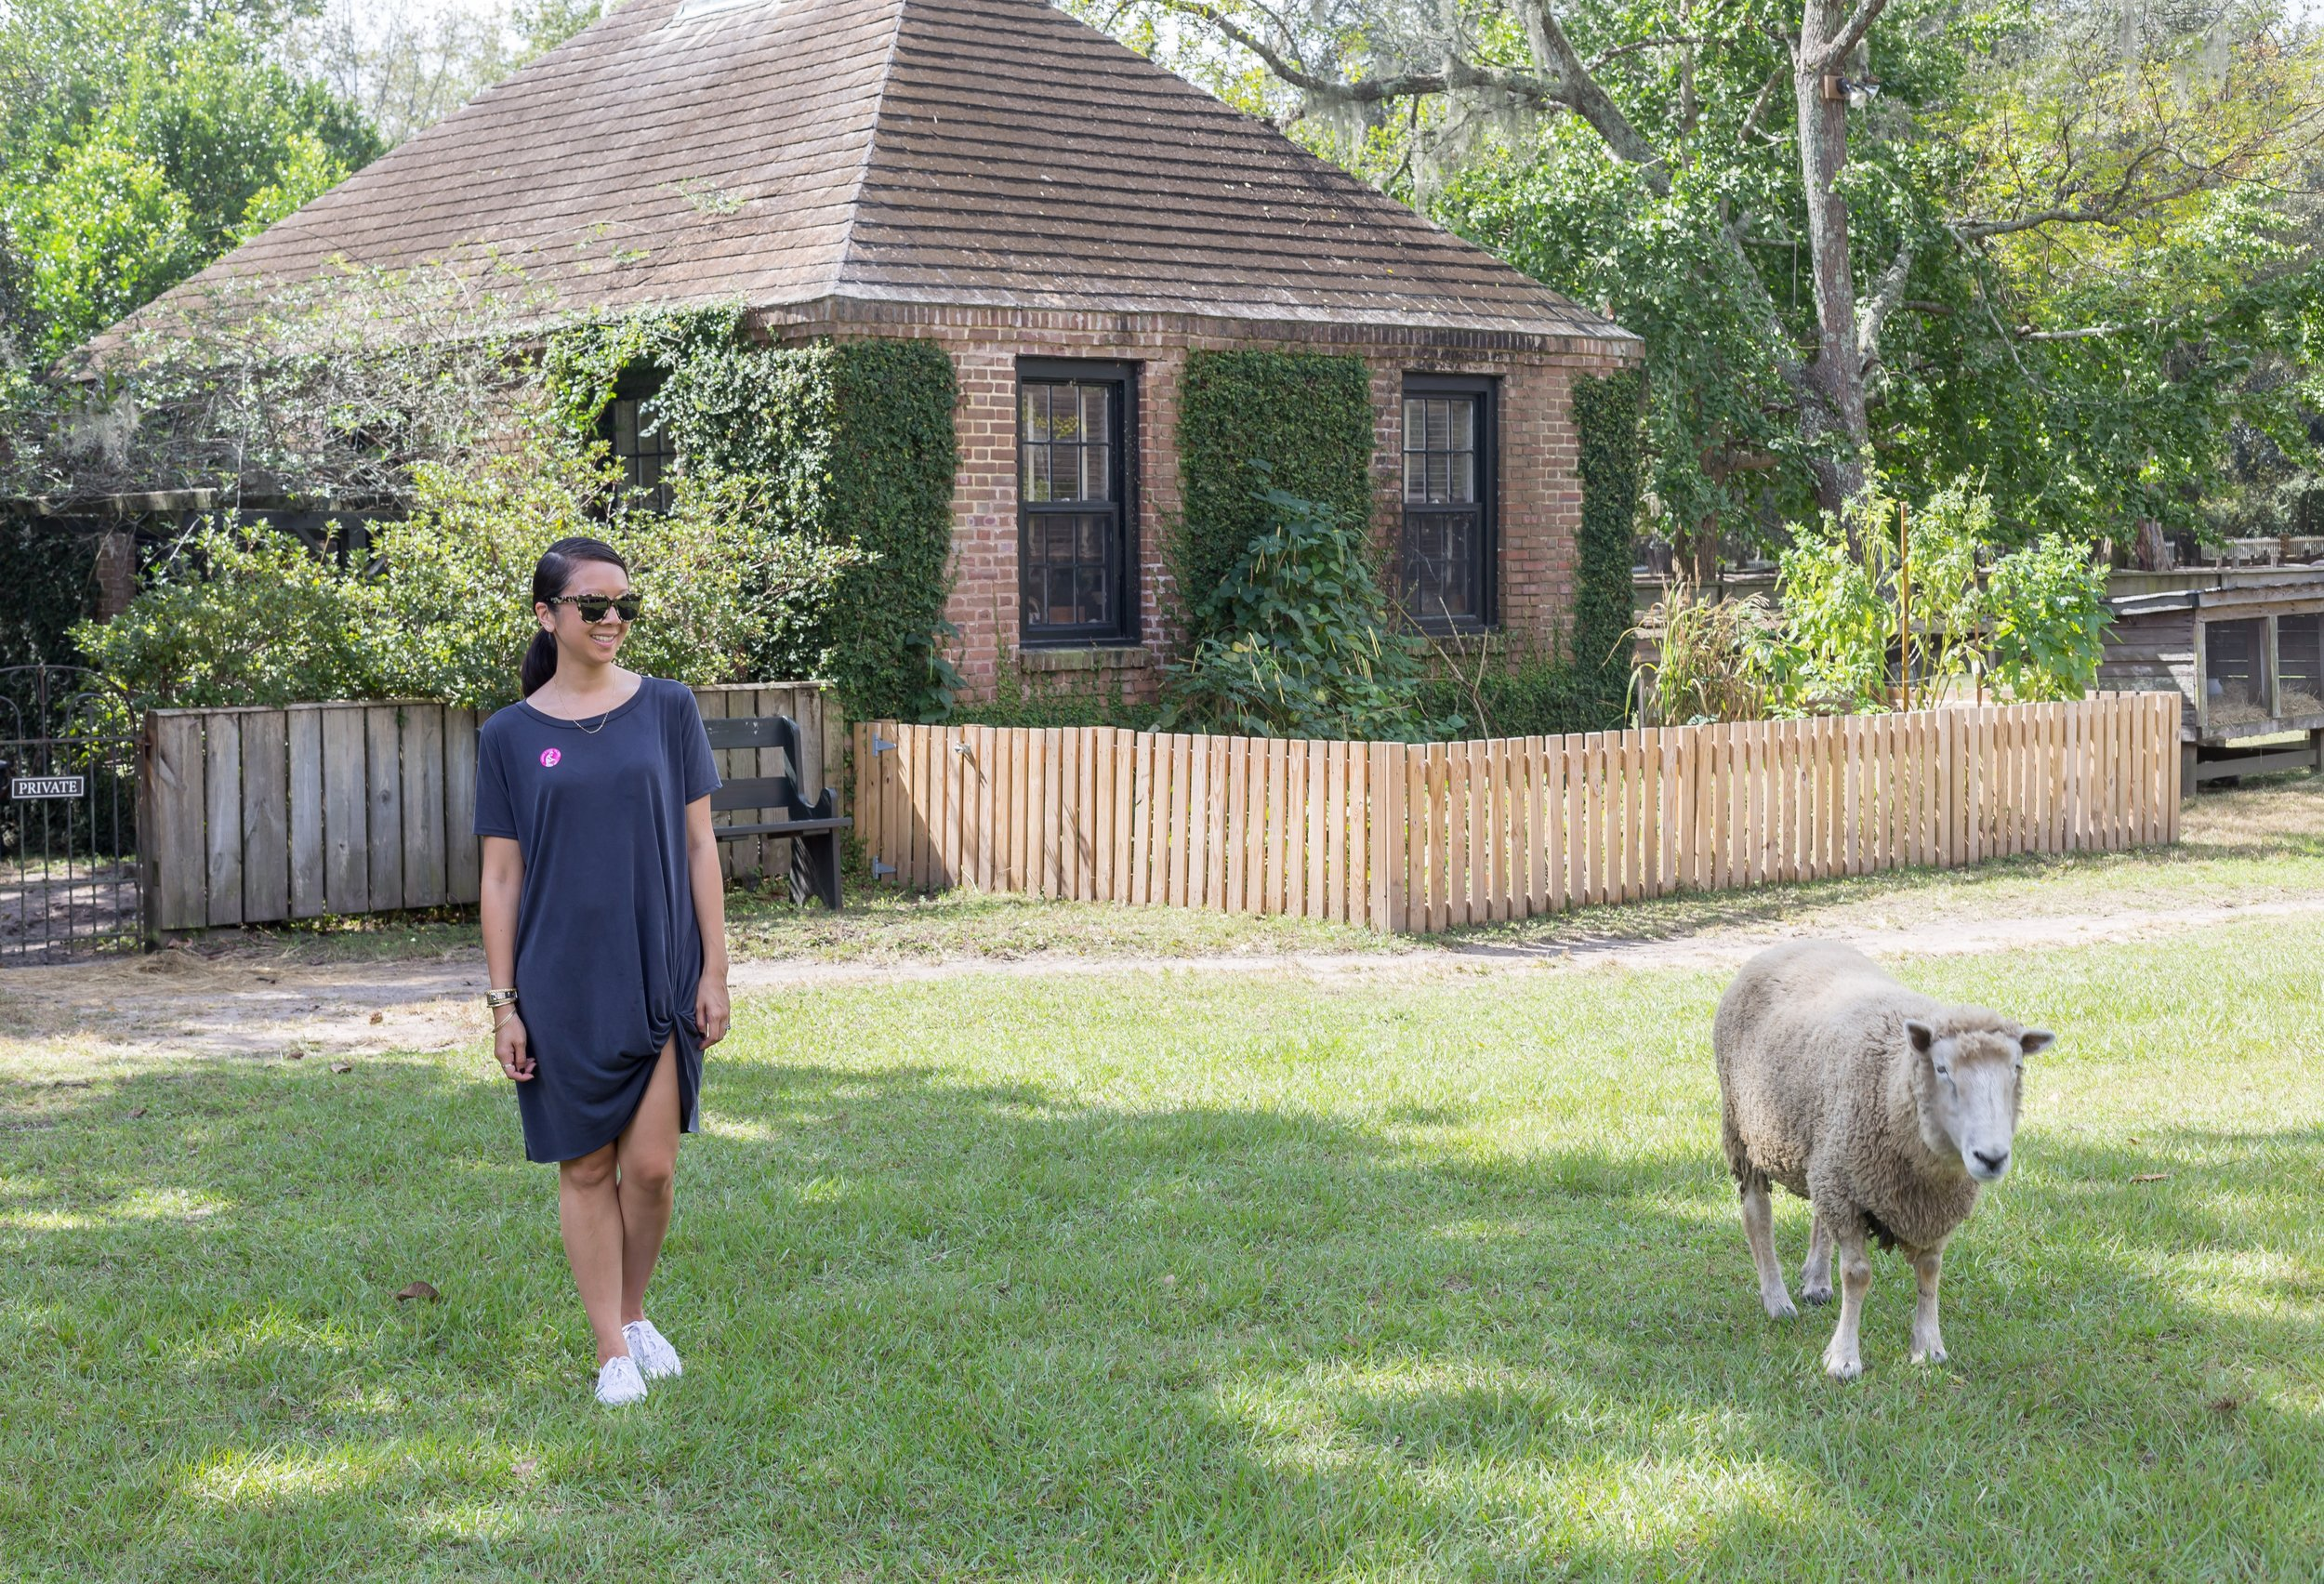 After visiting Magnolia Plantation & Gardens, we took a drive over to  Middleton Place , a national historic landmark. It boasts different types of flowers so that there's always something in bloom no matter what time of year you visit. And you get to hang with some sheep - what more can you ask for?